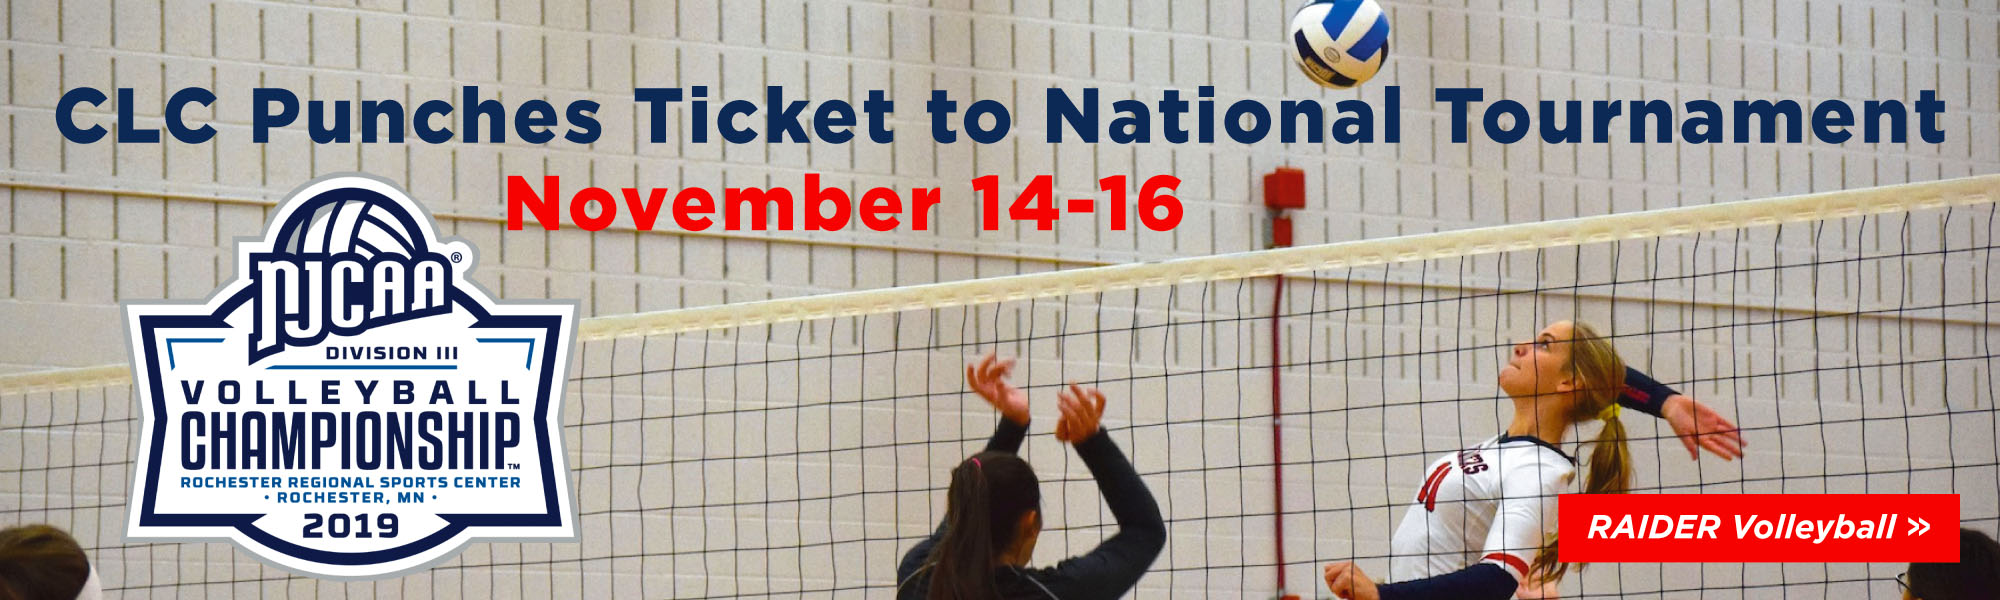 Volleyball National